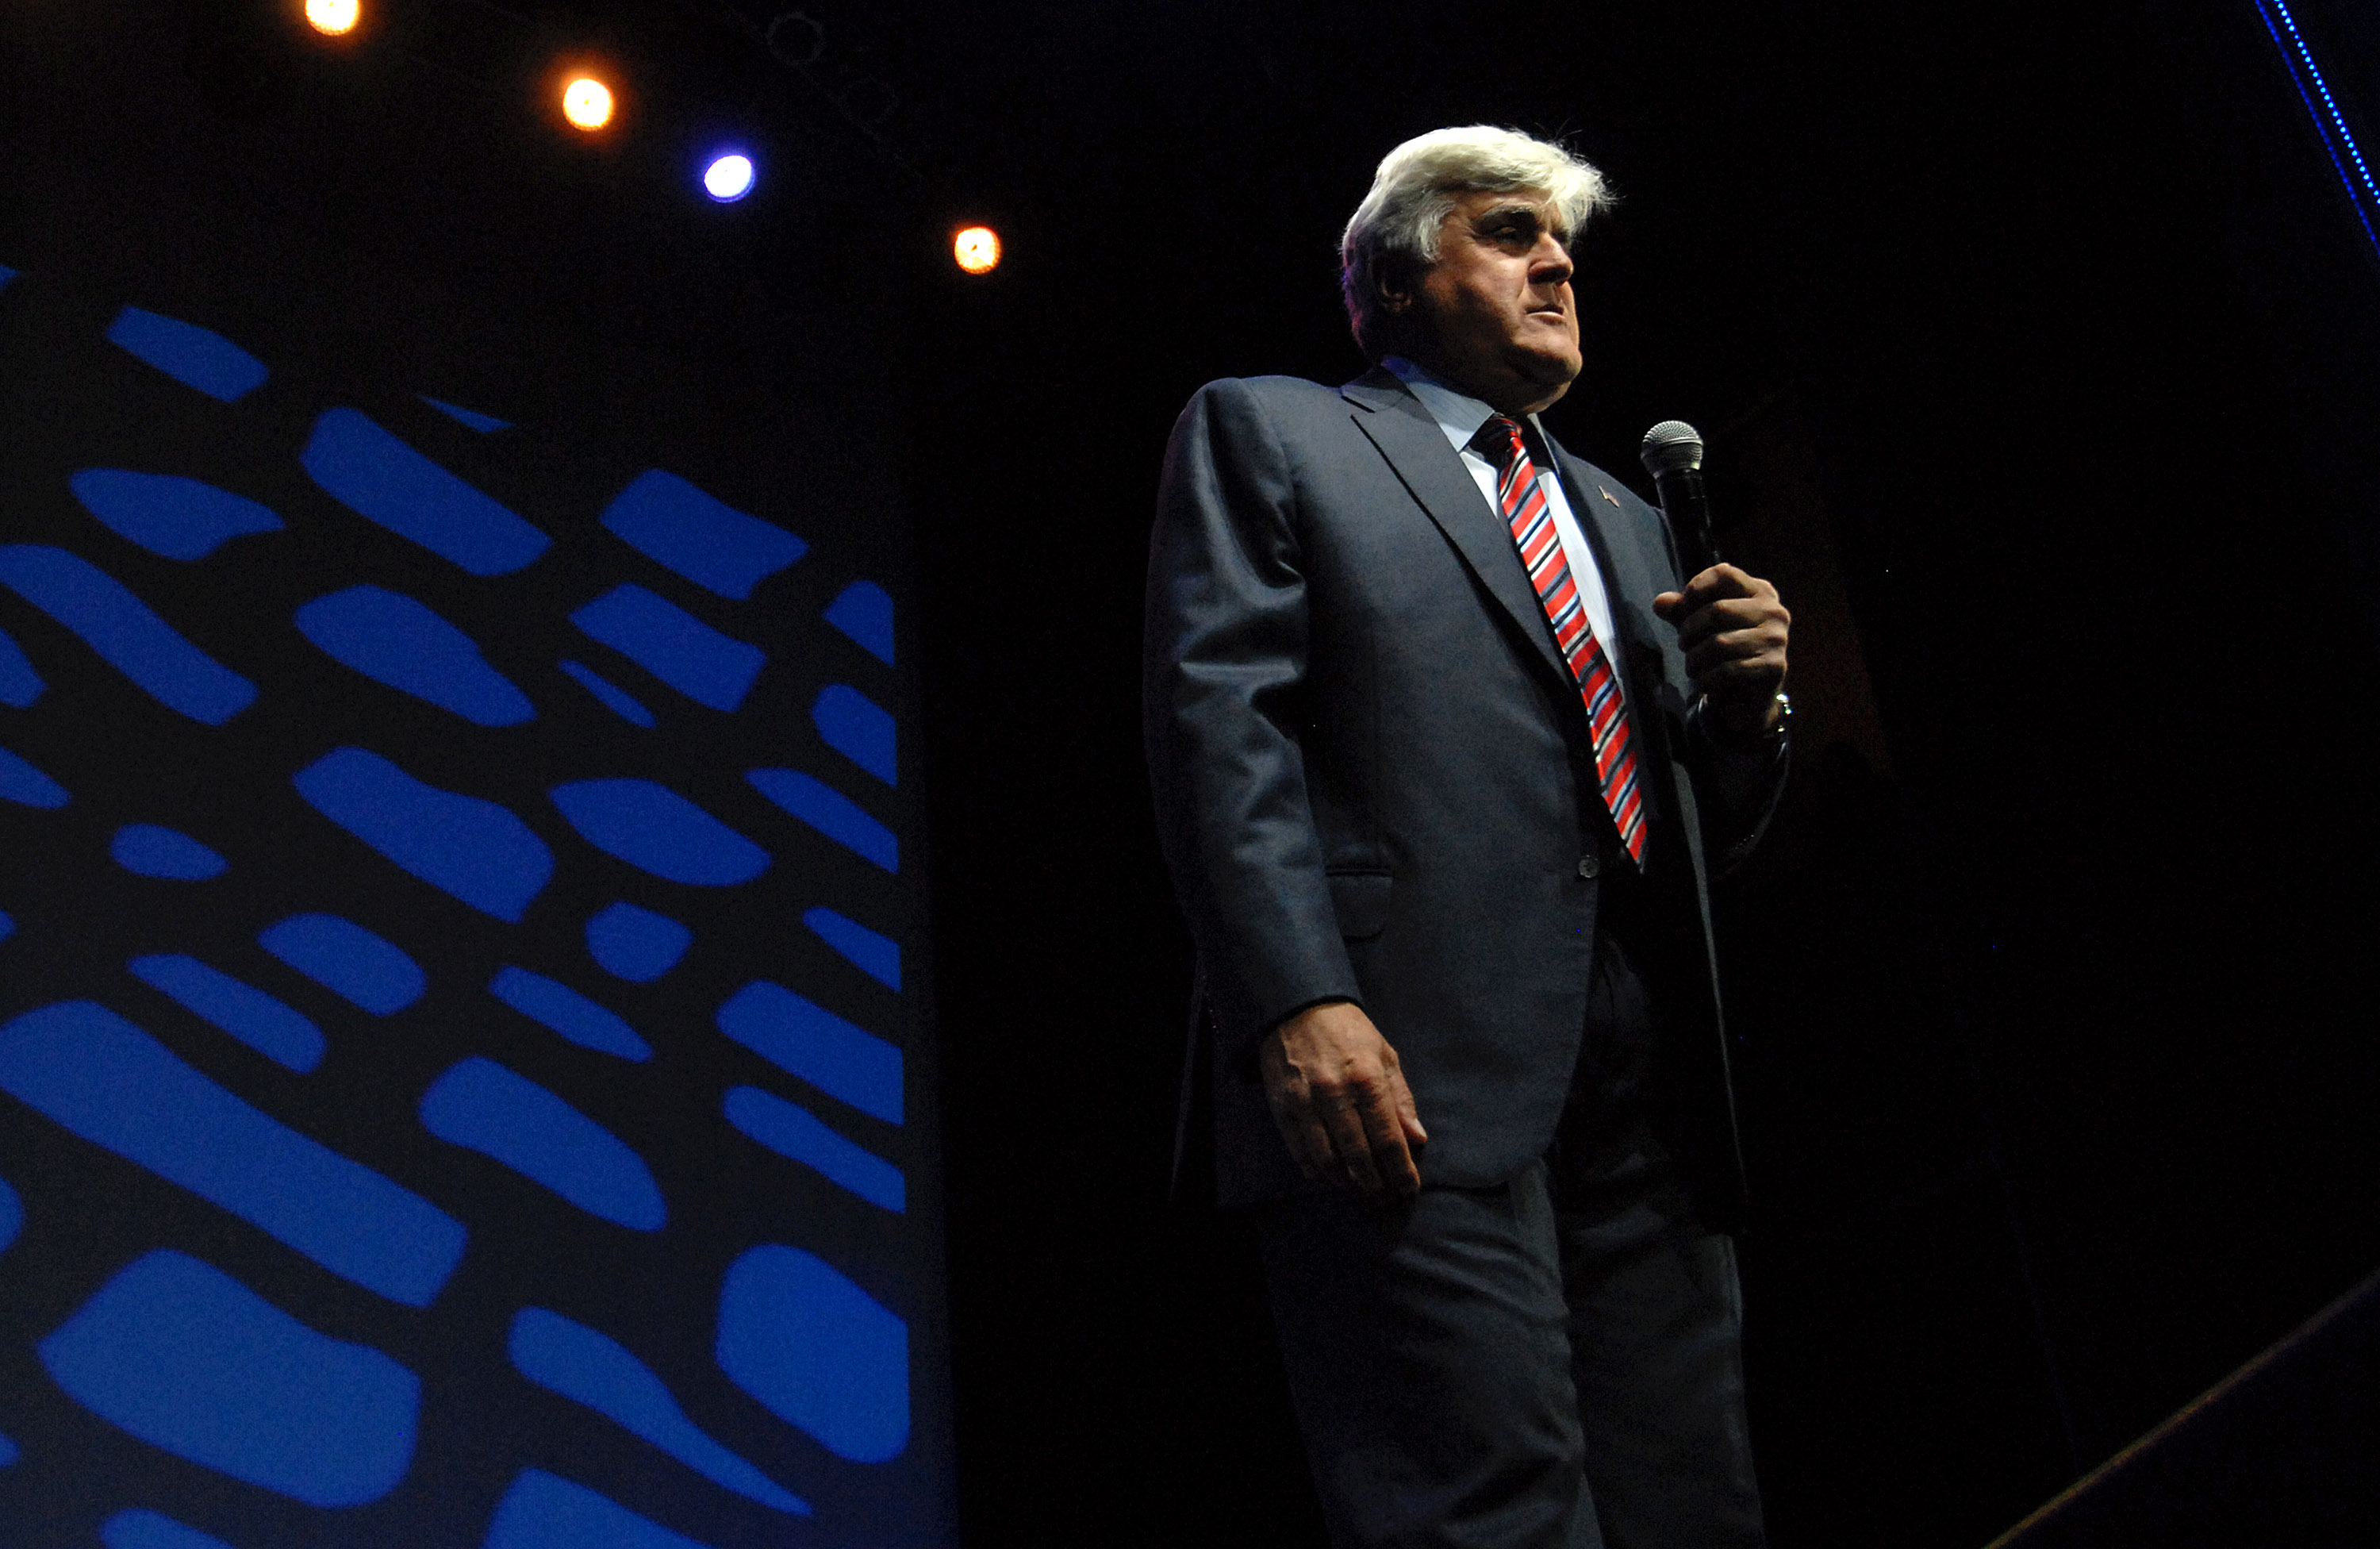 Jay Leno performs at MotorCity Casino's Sound Board Theater on June 7, 2014 in Detroit.